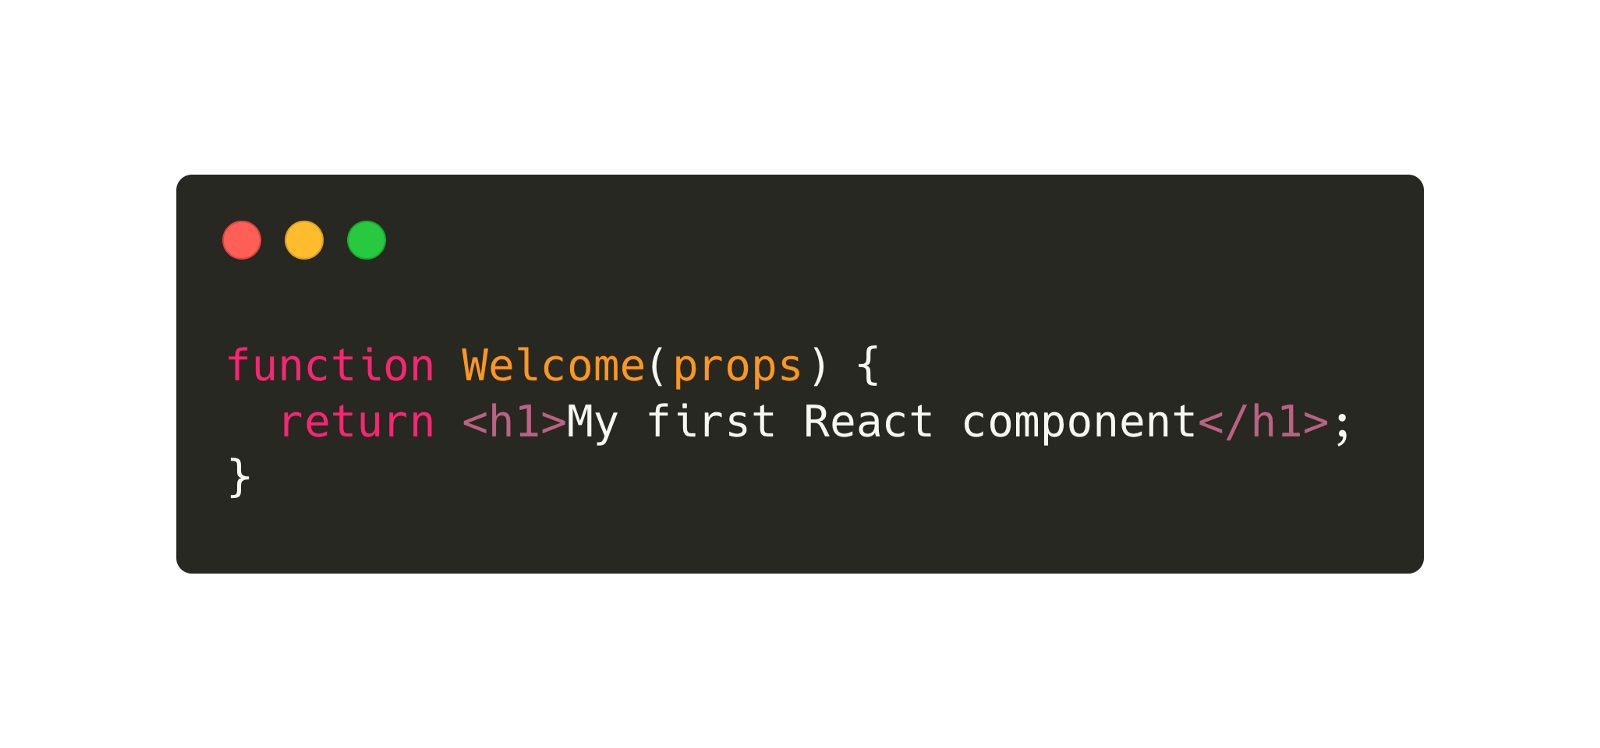 Image shows code reading 'function Welcome(props) { return <h1>My first React component</h1> ; }'